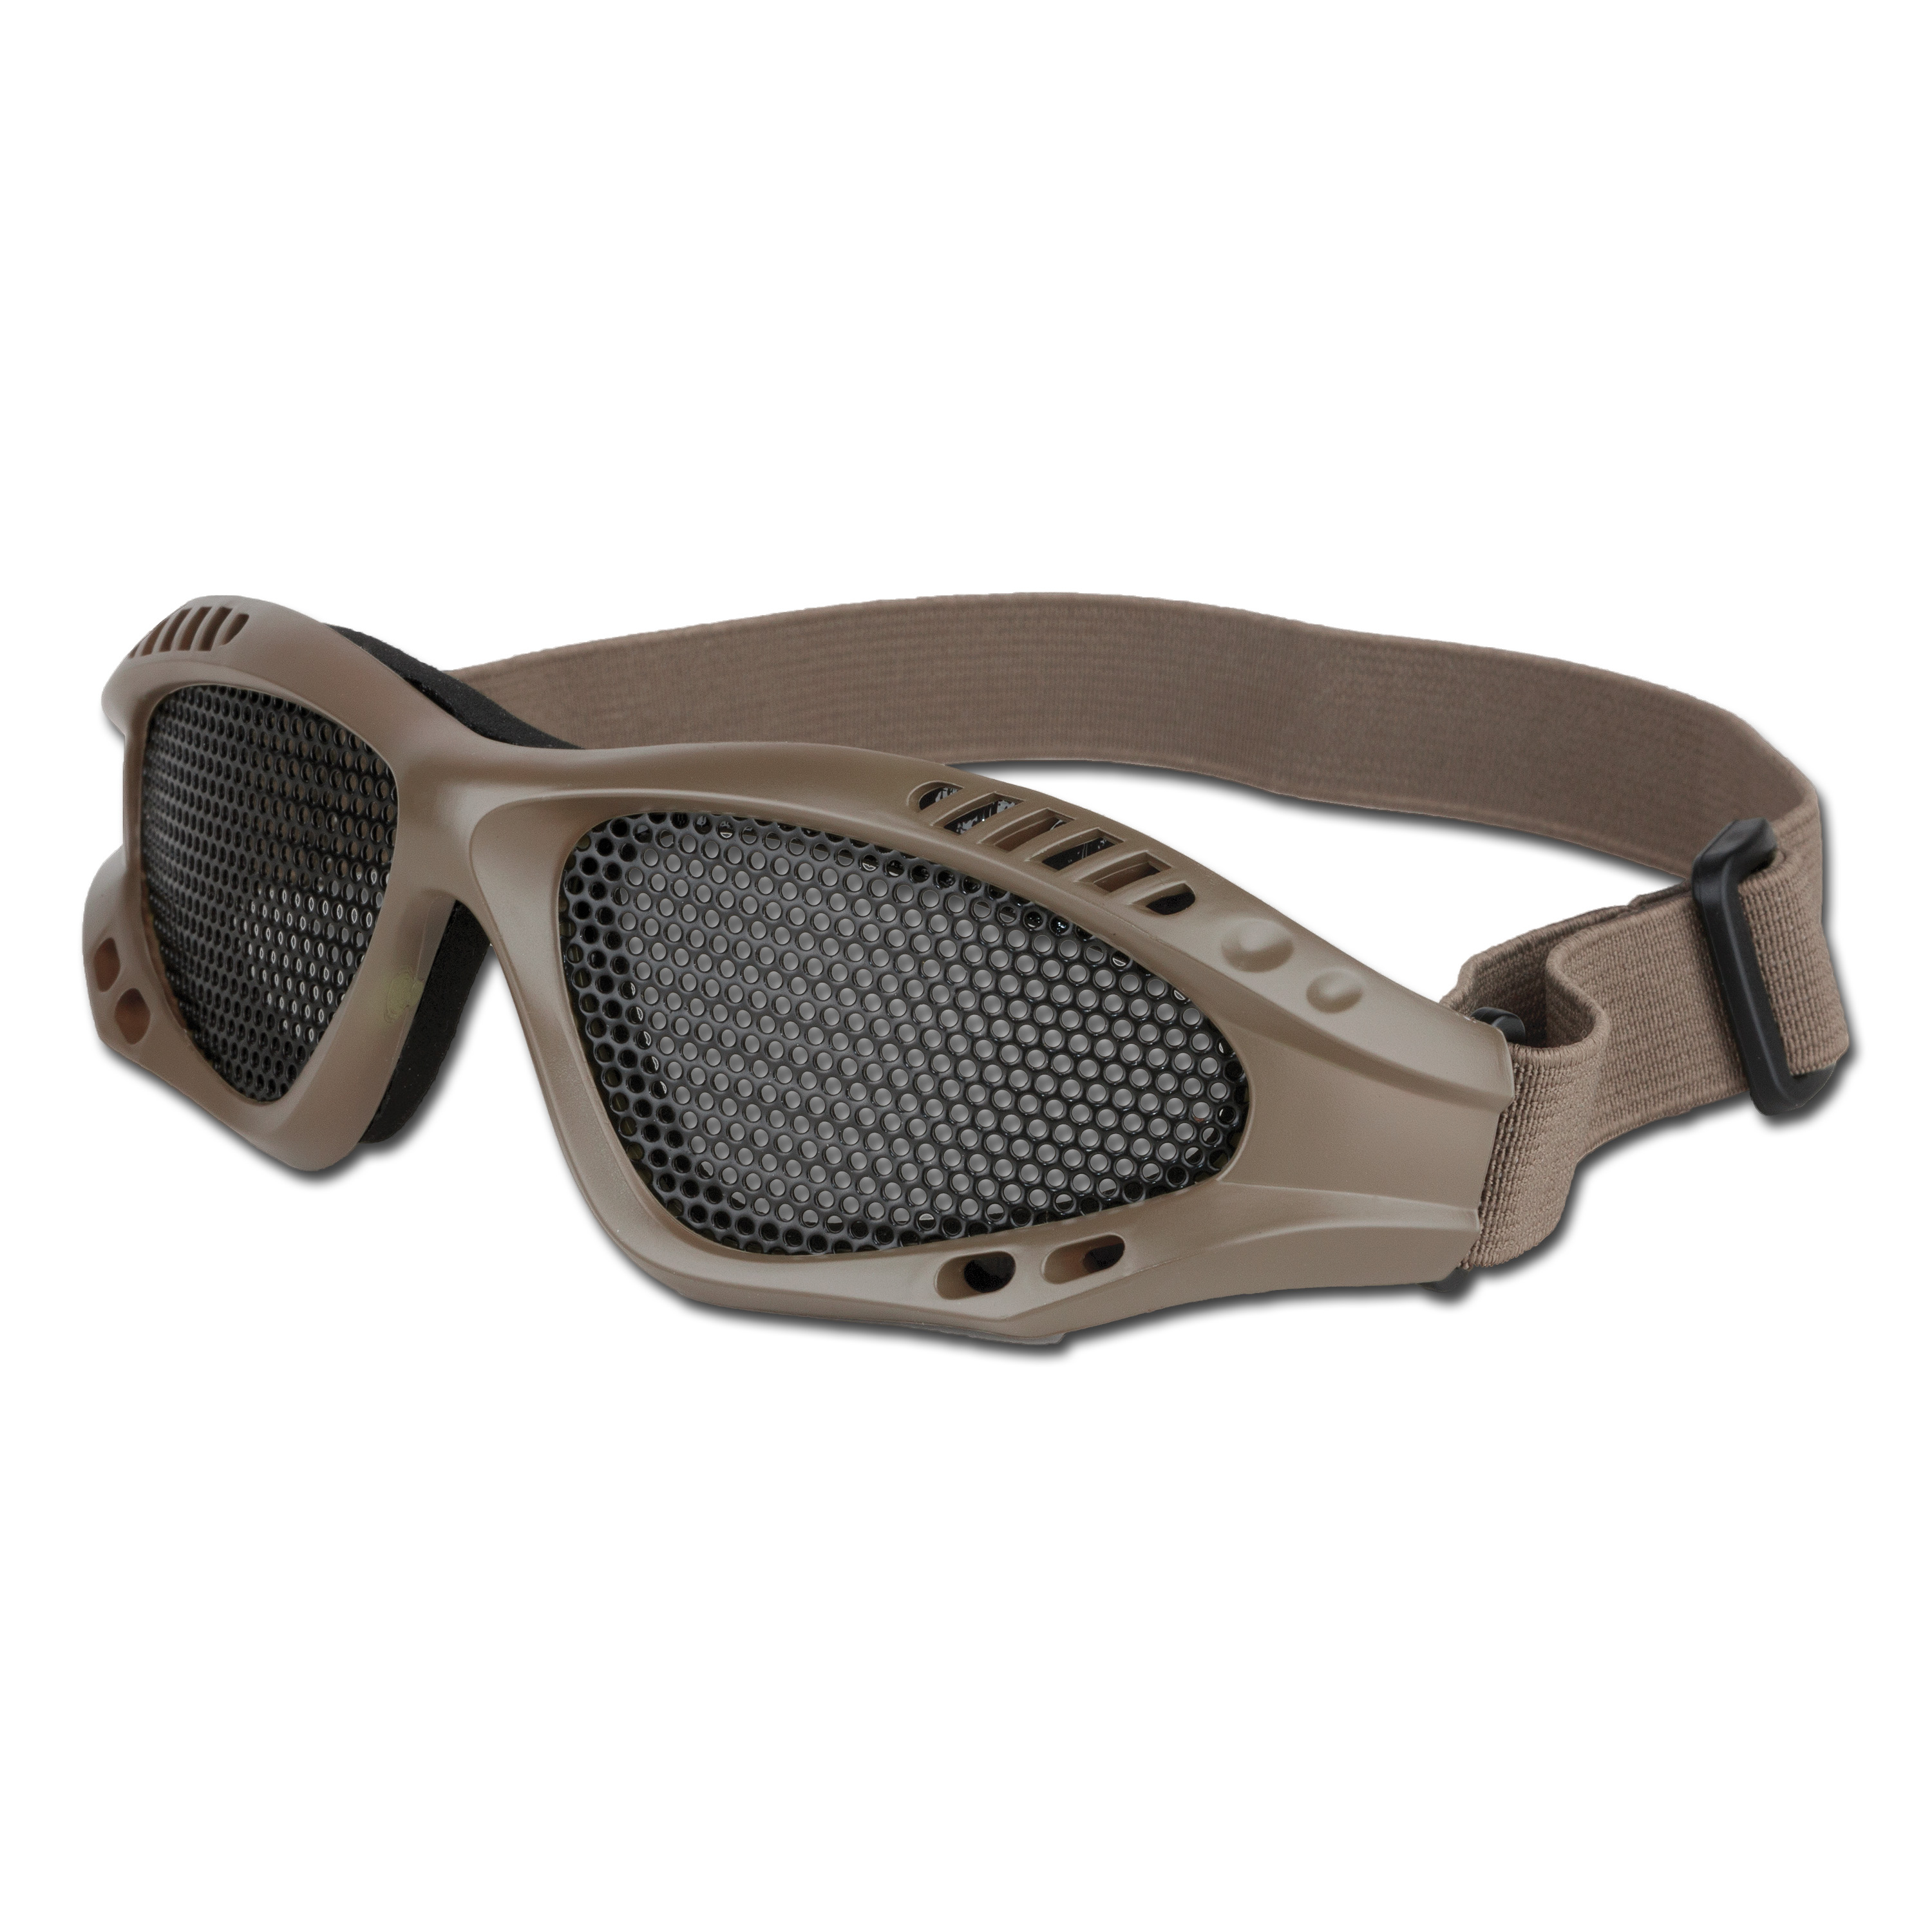 Airsoft Glasses With Metal Mesh Insert beige